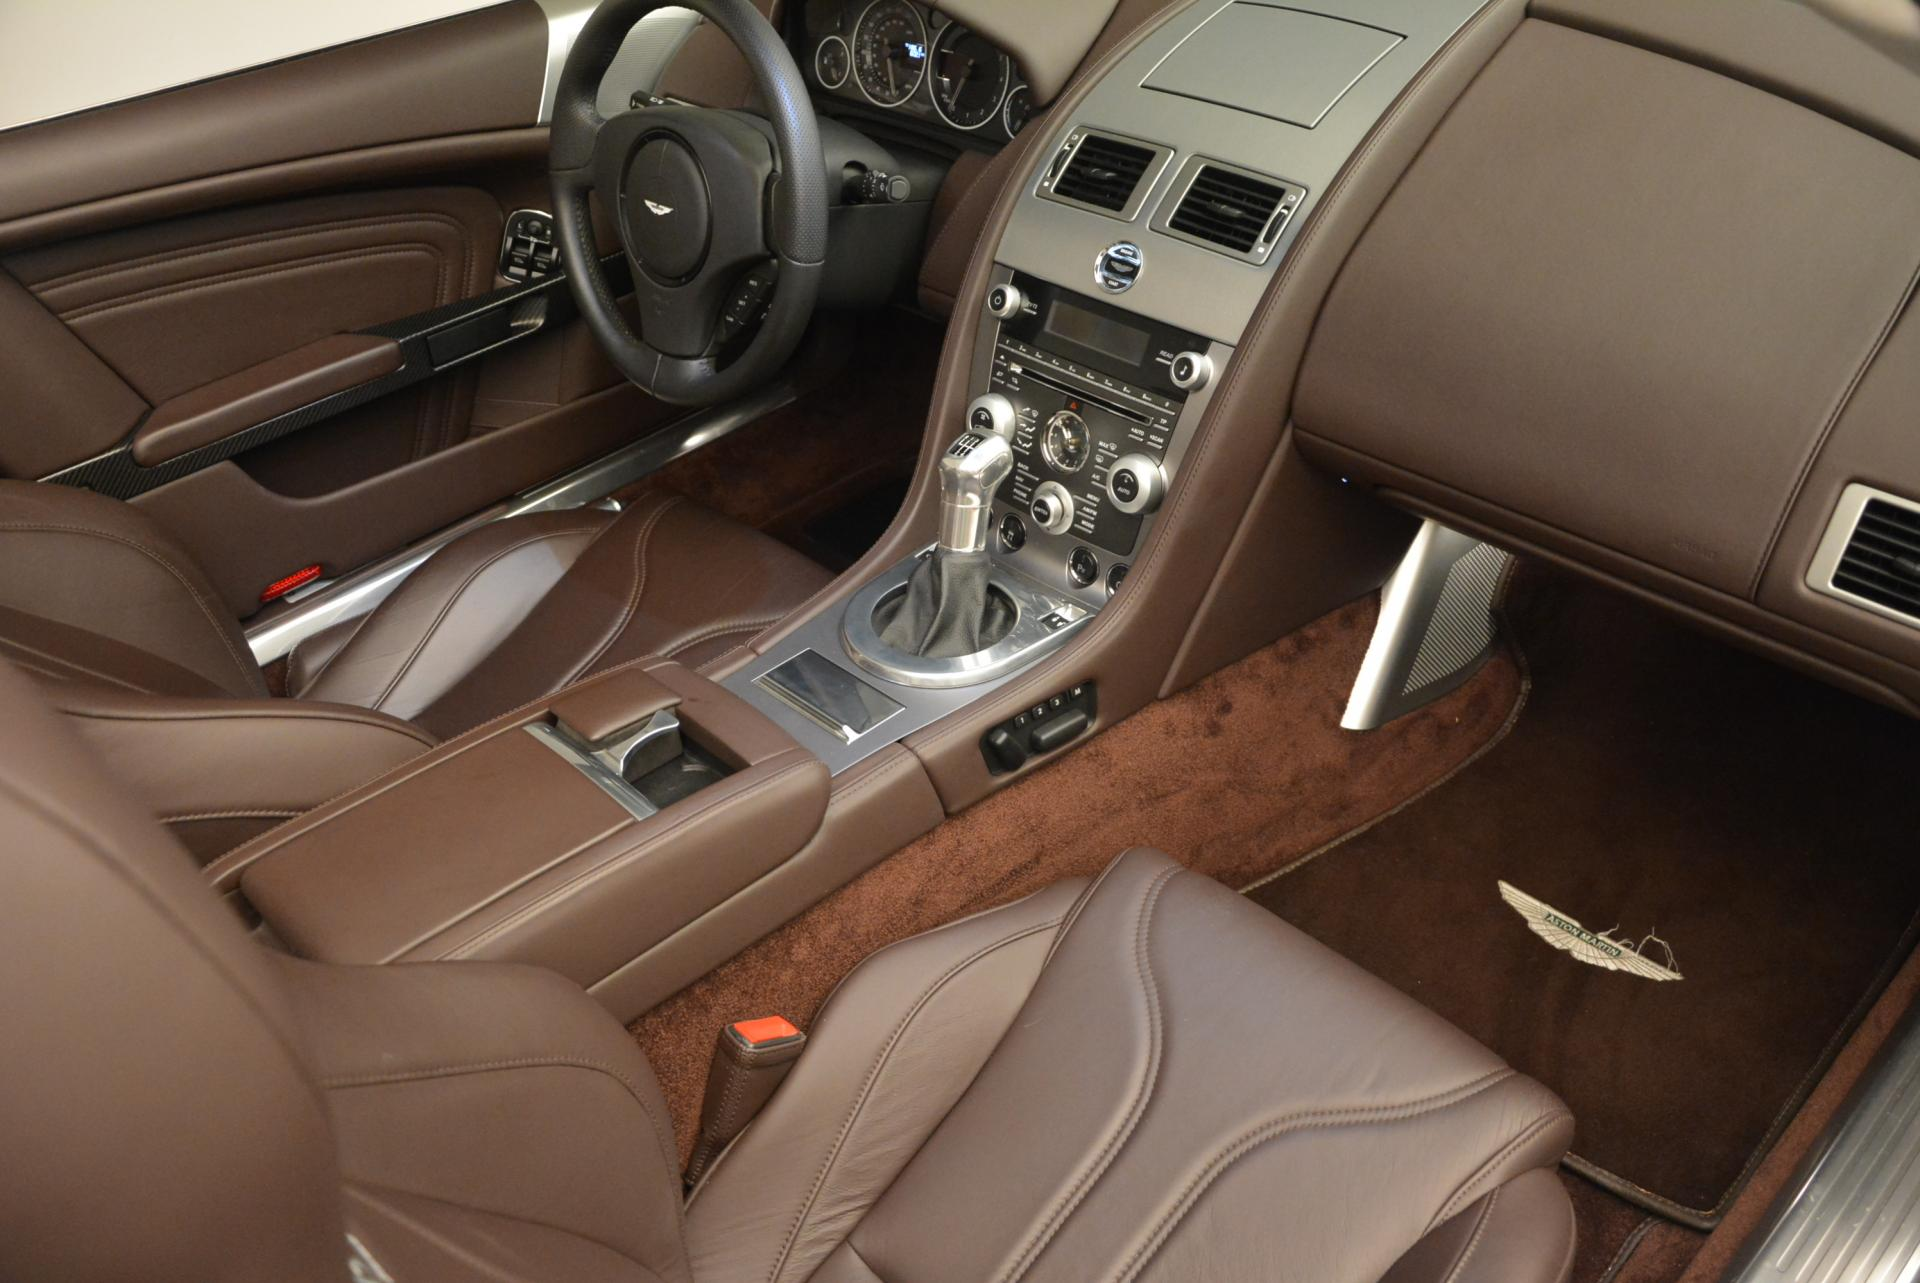 Used 2010 Aston Martin DBS Volante For Sale In Westport, CT 87_p36